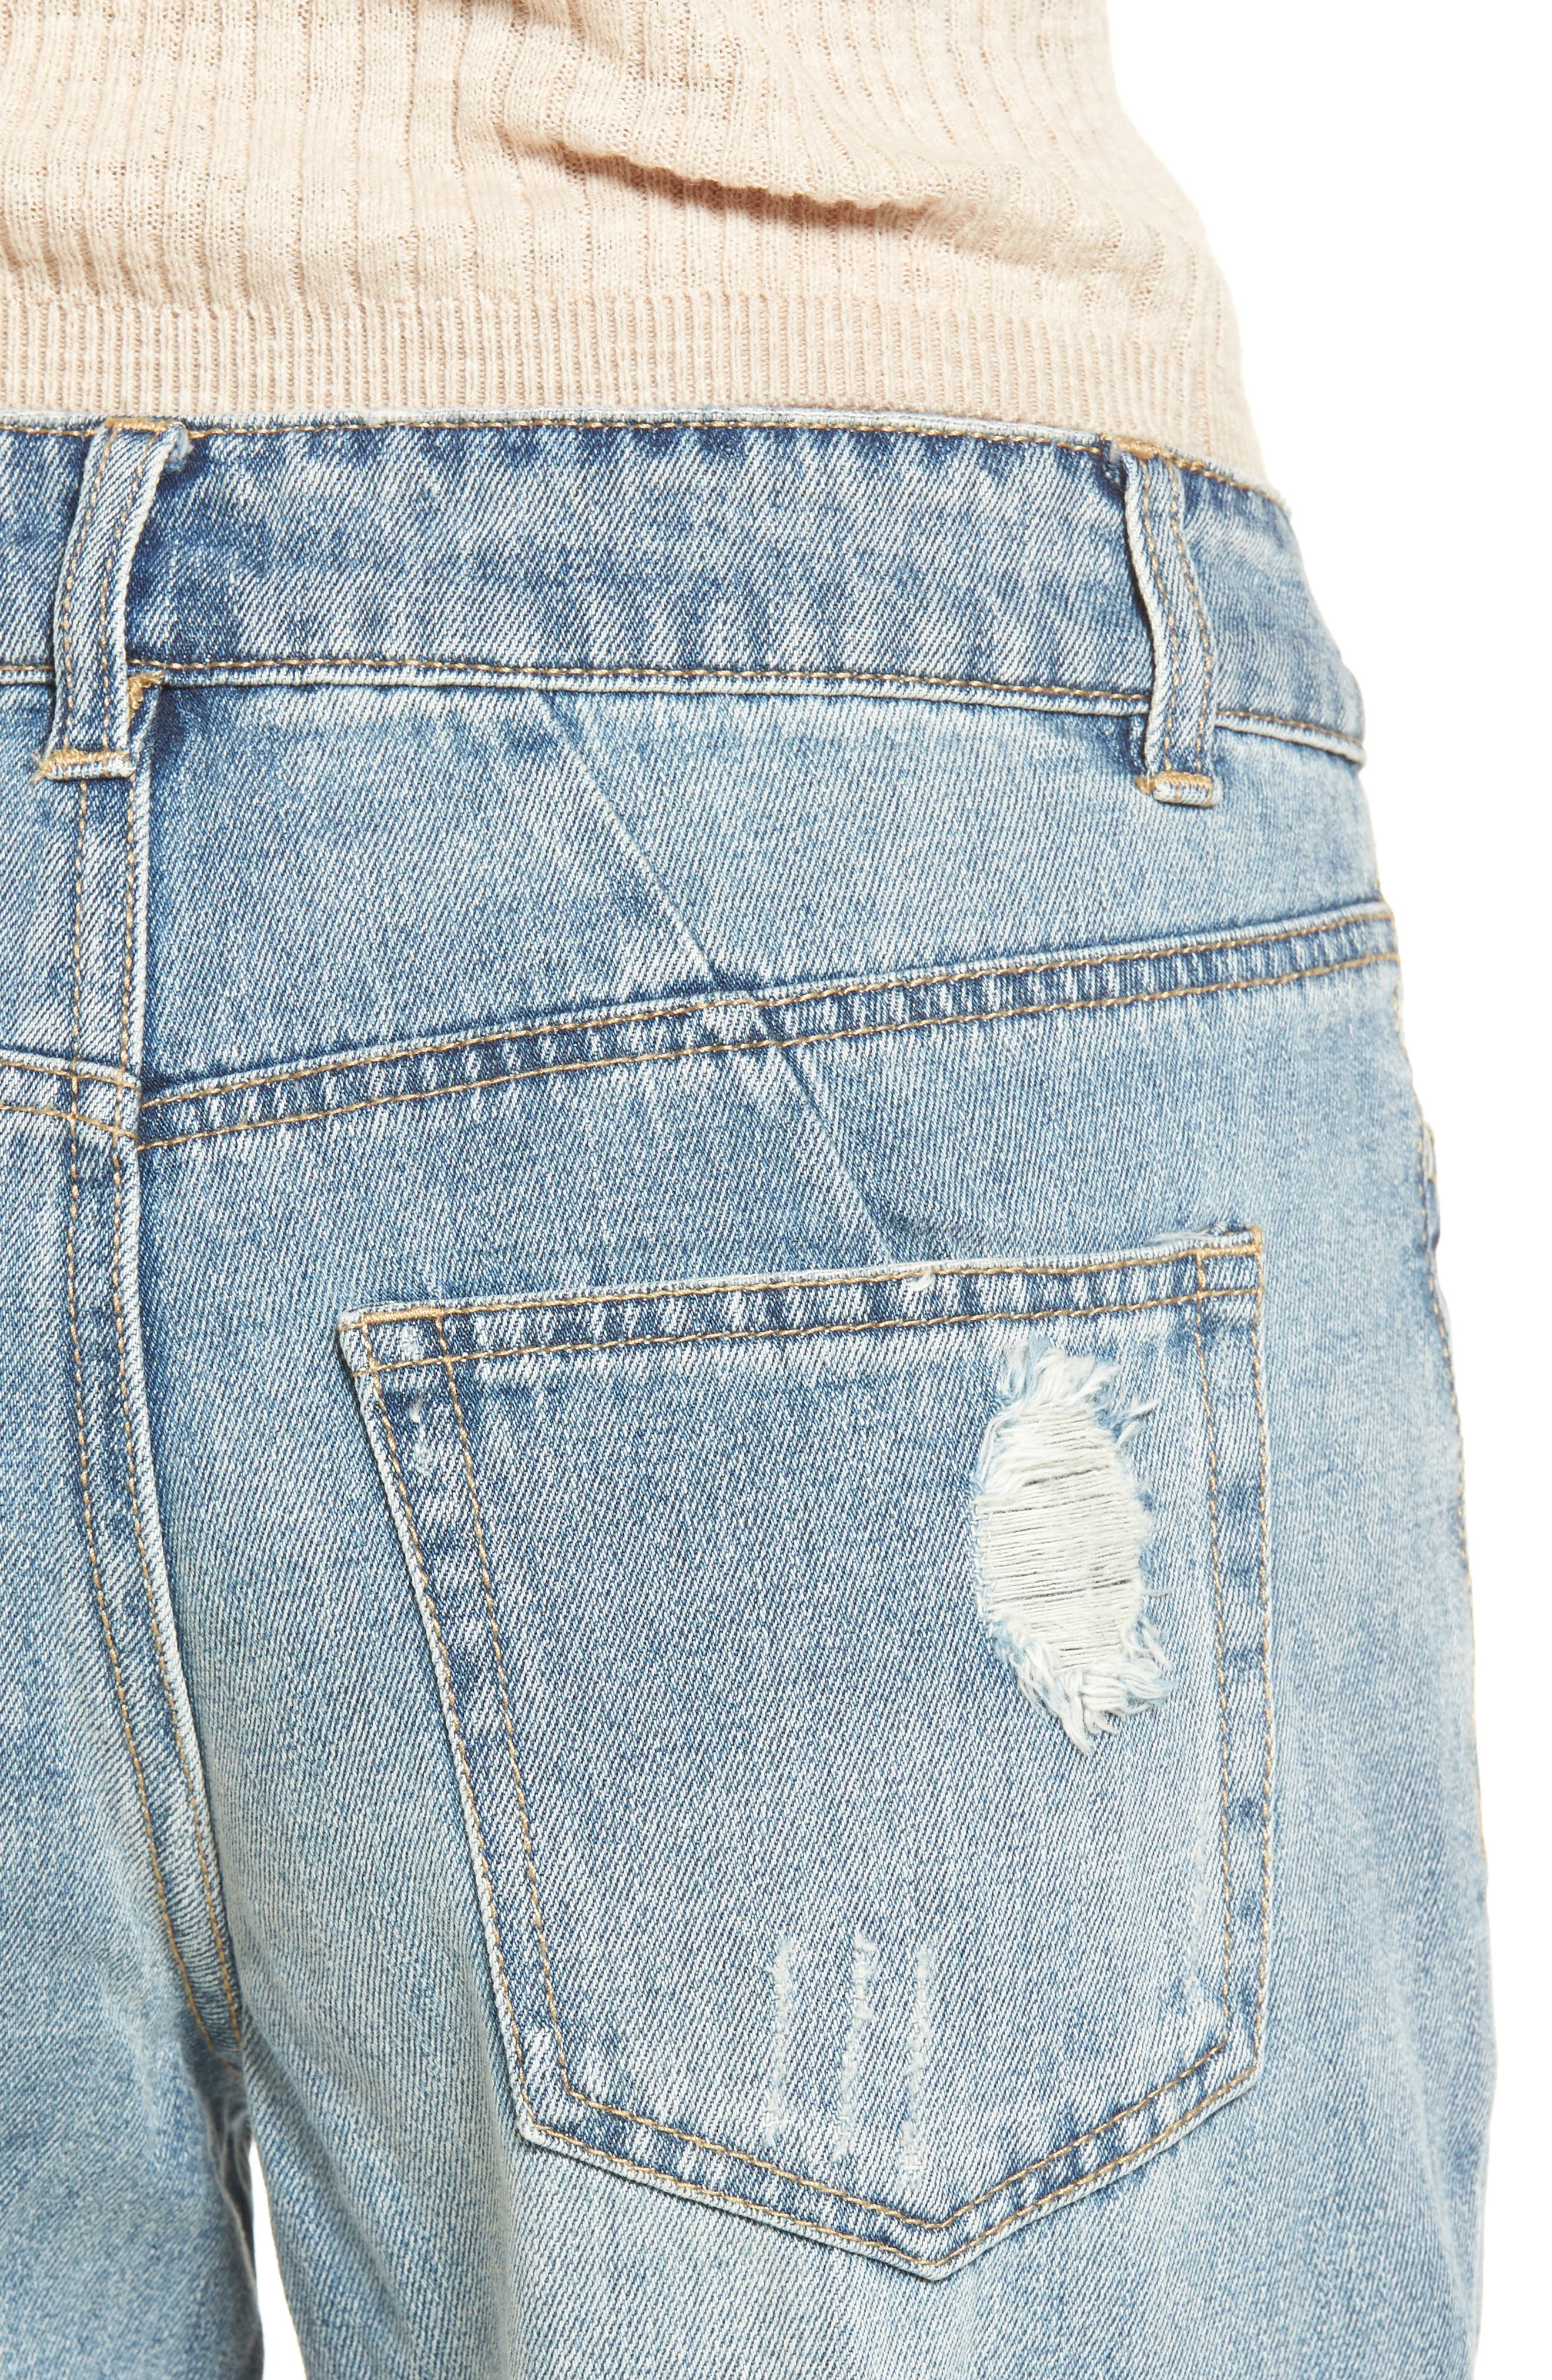 Cyrus High Waist Ankle Jeans,                             Alternate thumbnail 4, color,                             SINNER WASH